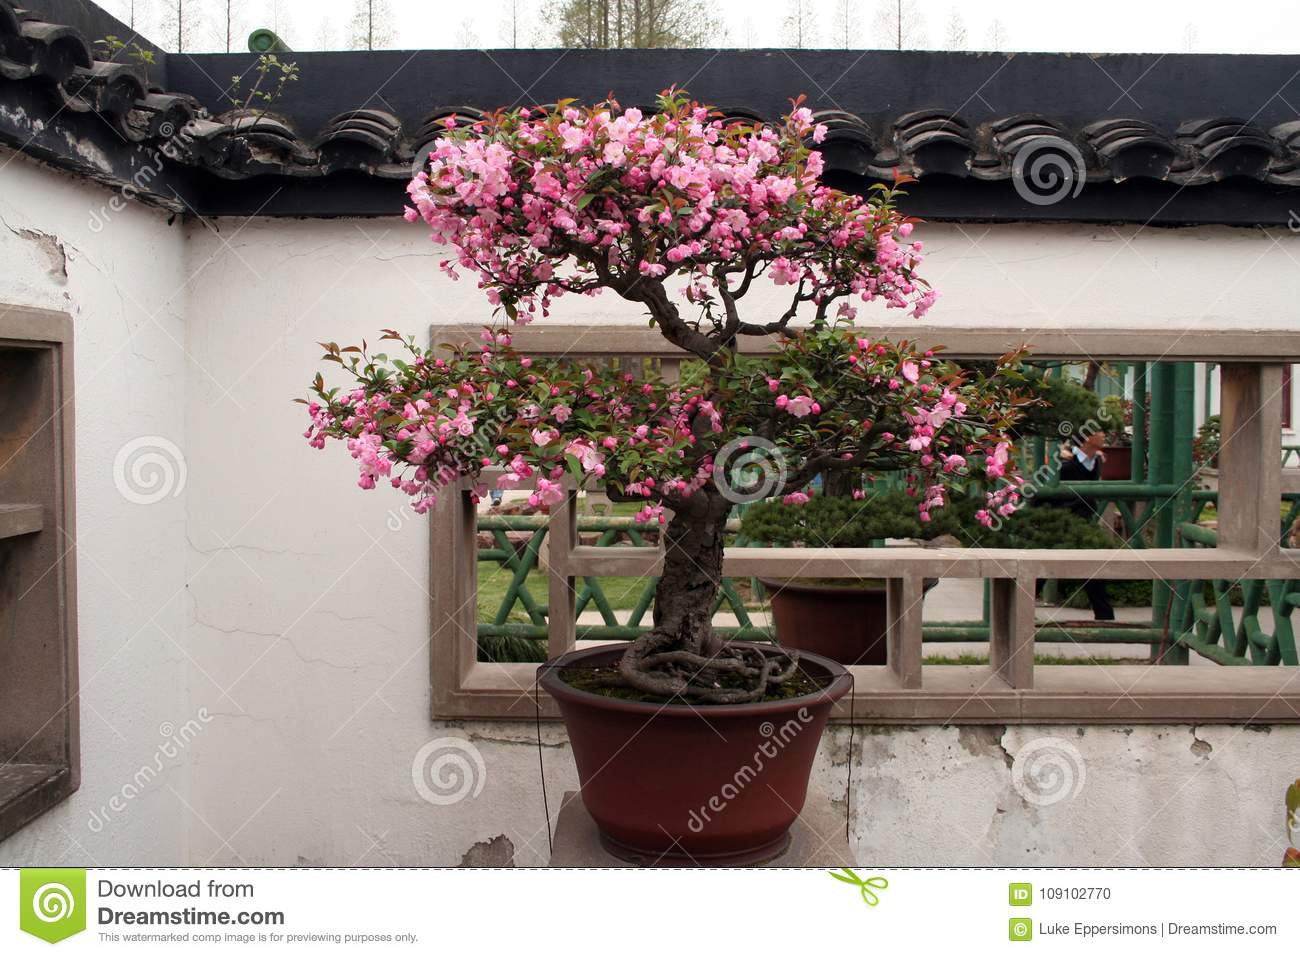 Bonsai Tree With Green Leaves And Pink Flowers Stock Photo Image